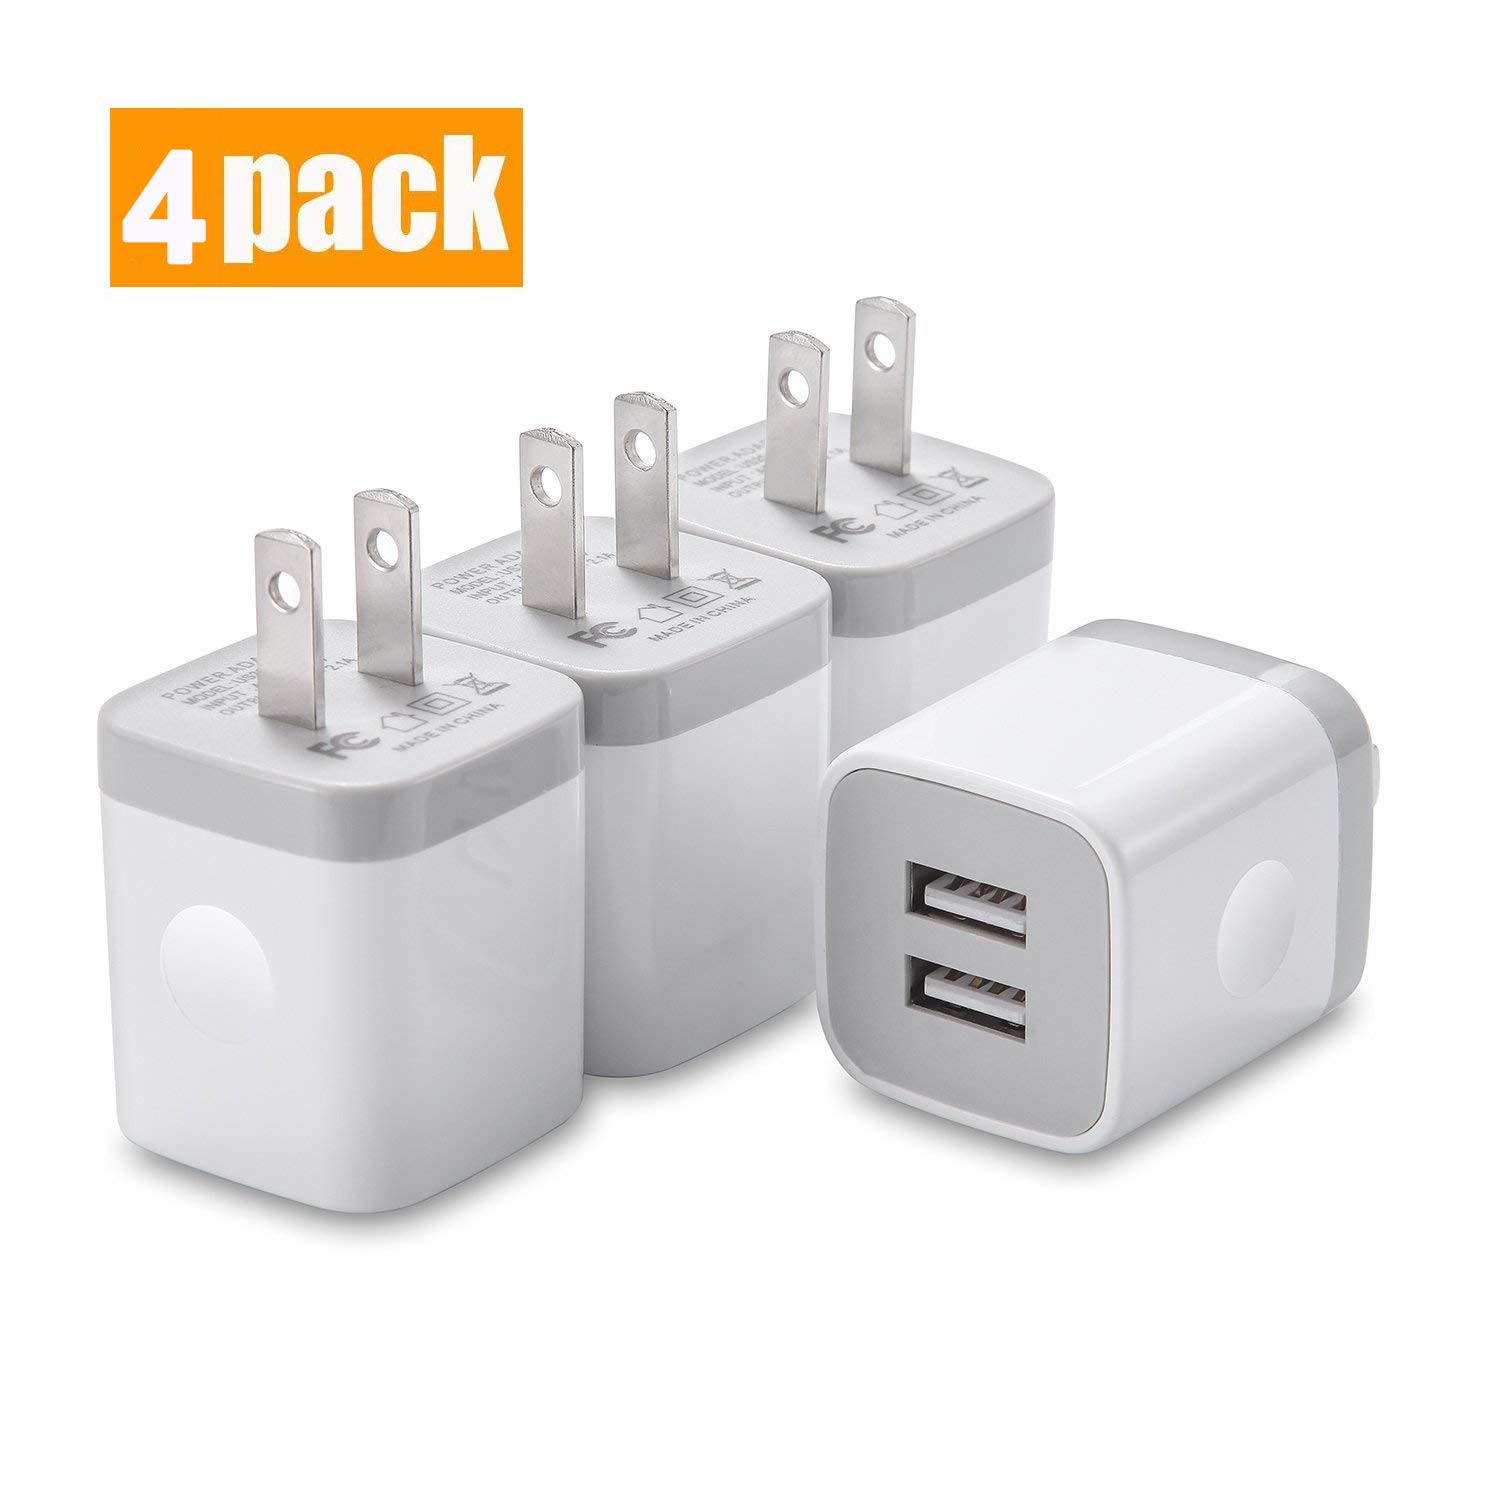 USINFLY USB Wall Charger, UL Certified 4-Pack 2.1A/5V Dual Port USB Plug Charger Block Power Adapter Charging Cube Compatible with iPhone Xs/Xs Max/XR/X/8/7/6 Plus, Samsung, Android, and More(White)